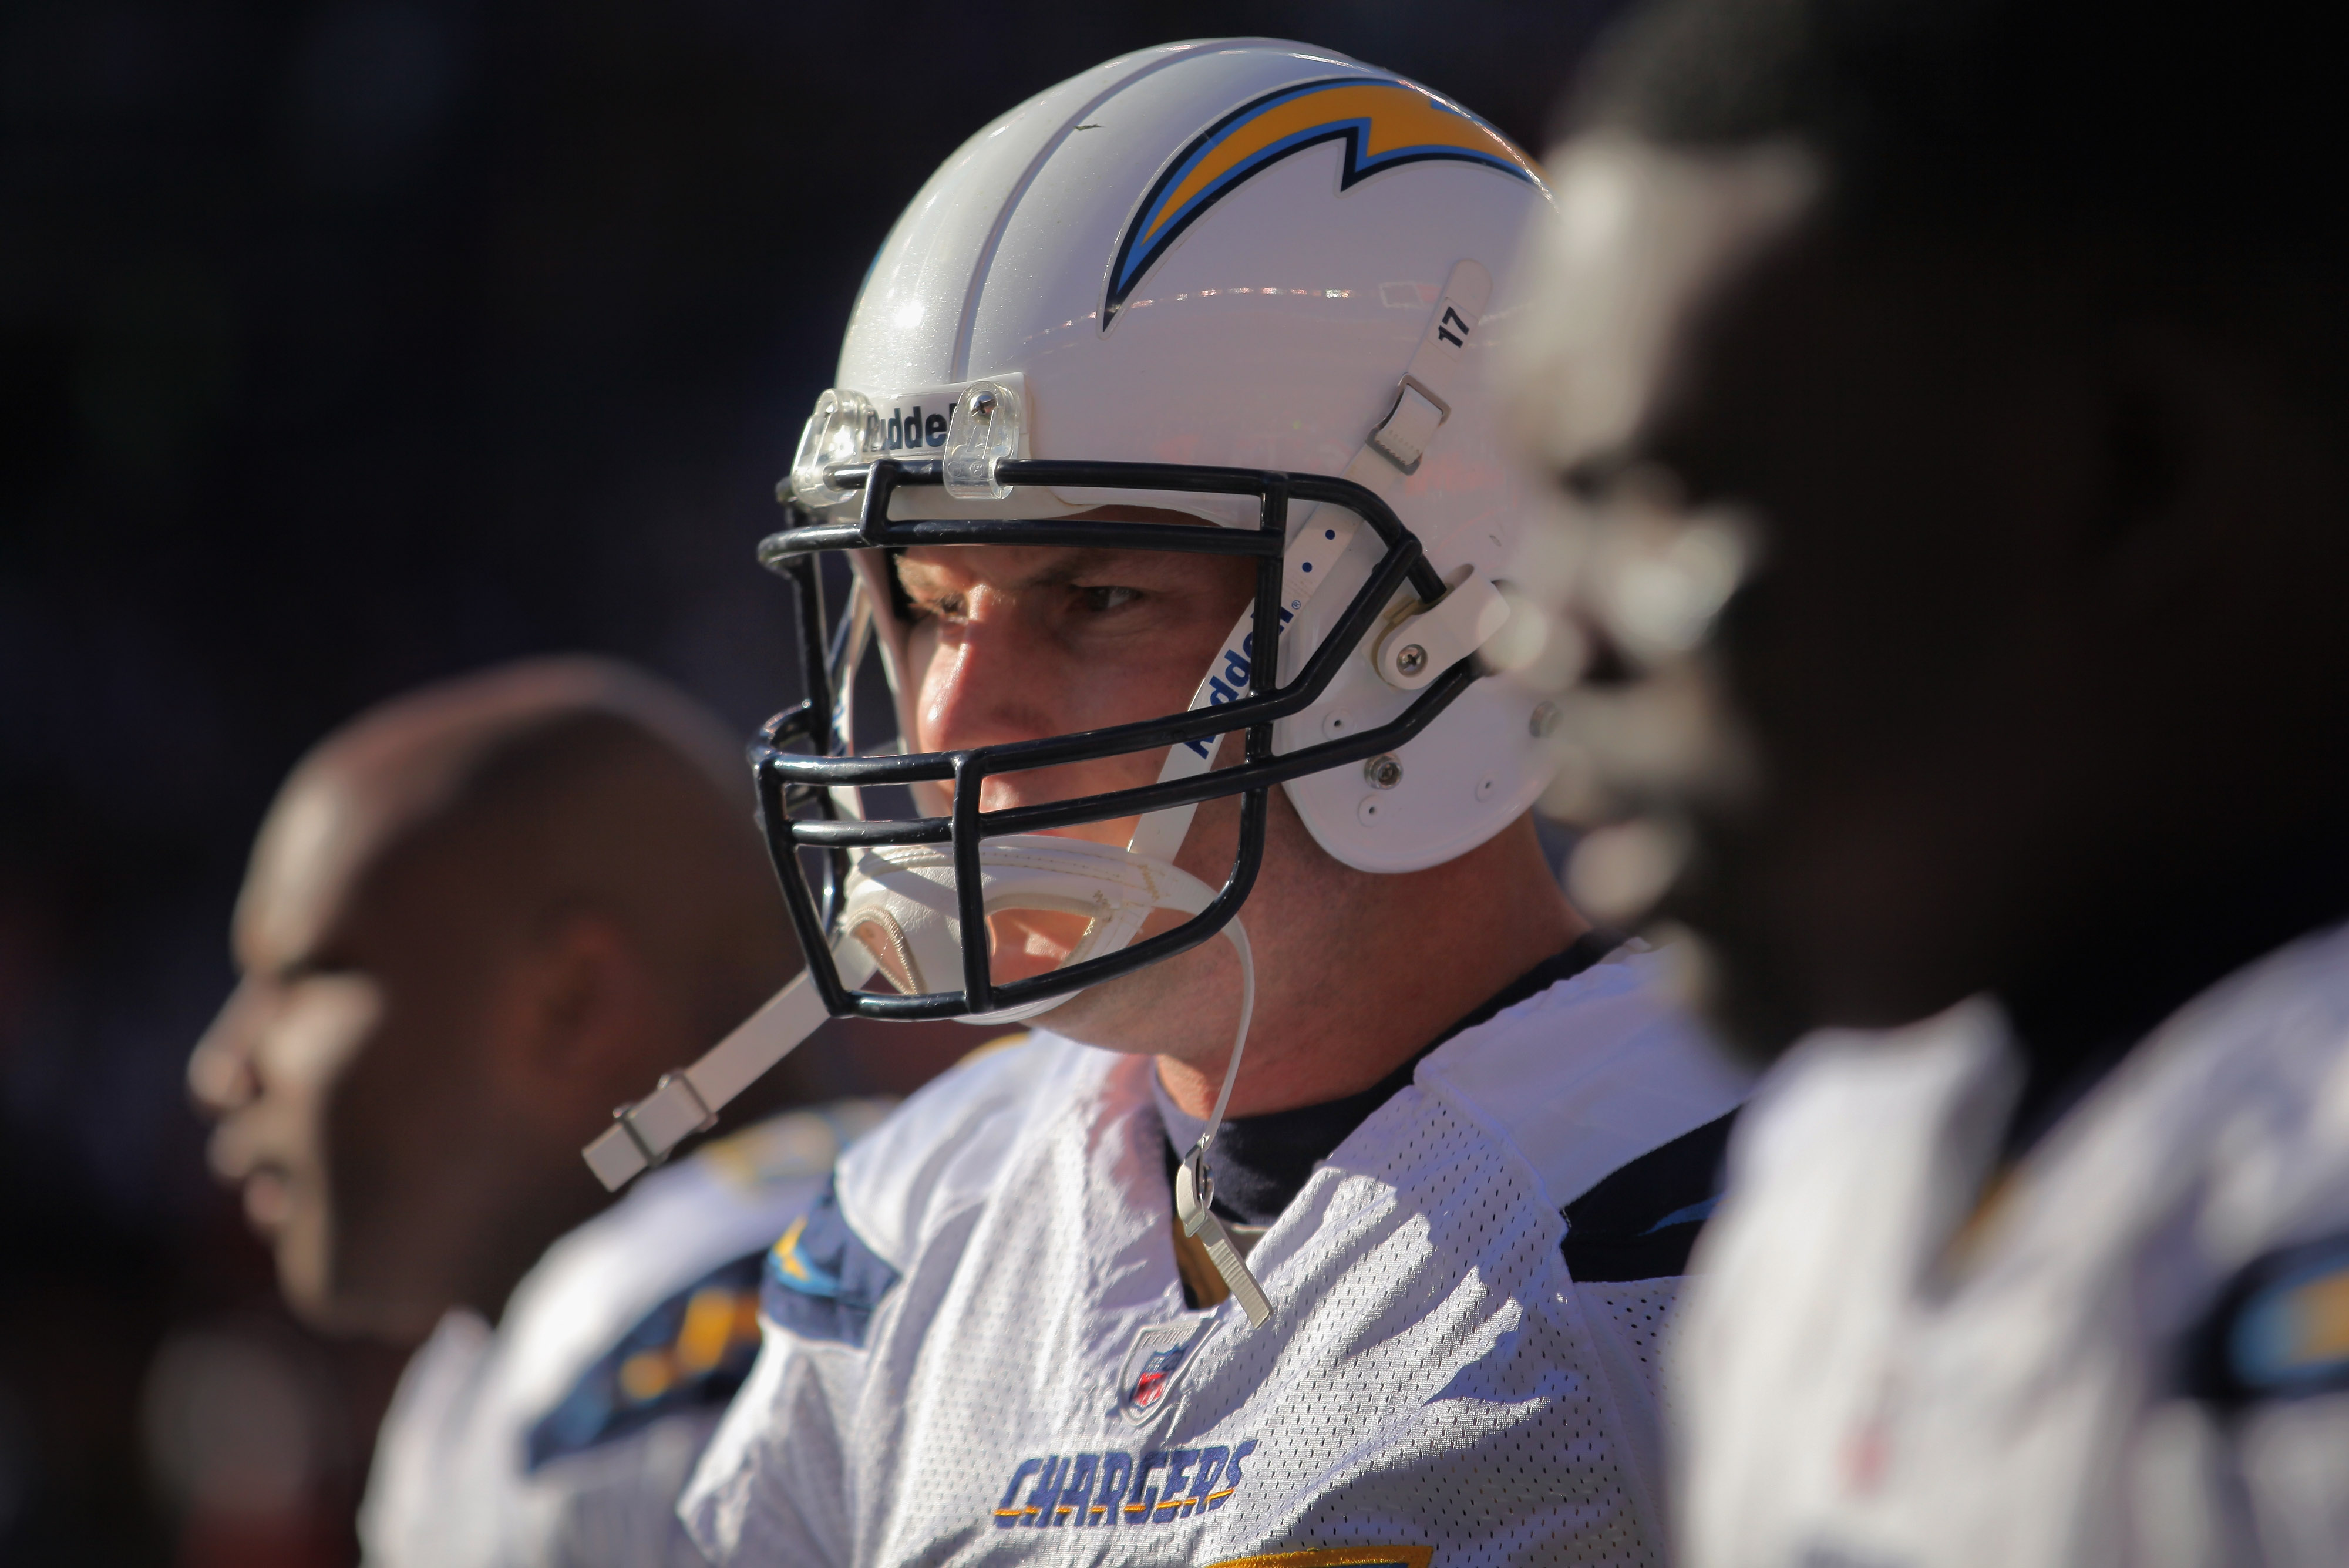 DENVER - JANUARY 02:  Quarterback Philip Rivers #17 of the San Diego Chargers takes the field against the Denver Broncos at INVESCO Field at Mile High on January 2, 2011 in Denver, Colorado. The Chargers defeated the Broncos 33-28.  (Photo by Doug Pensing